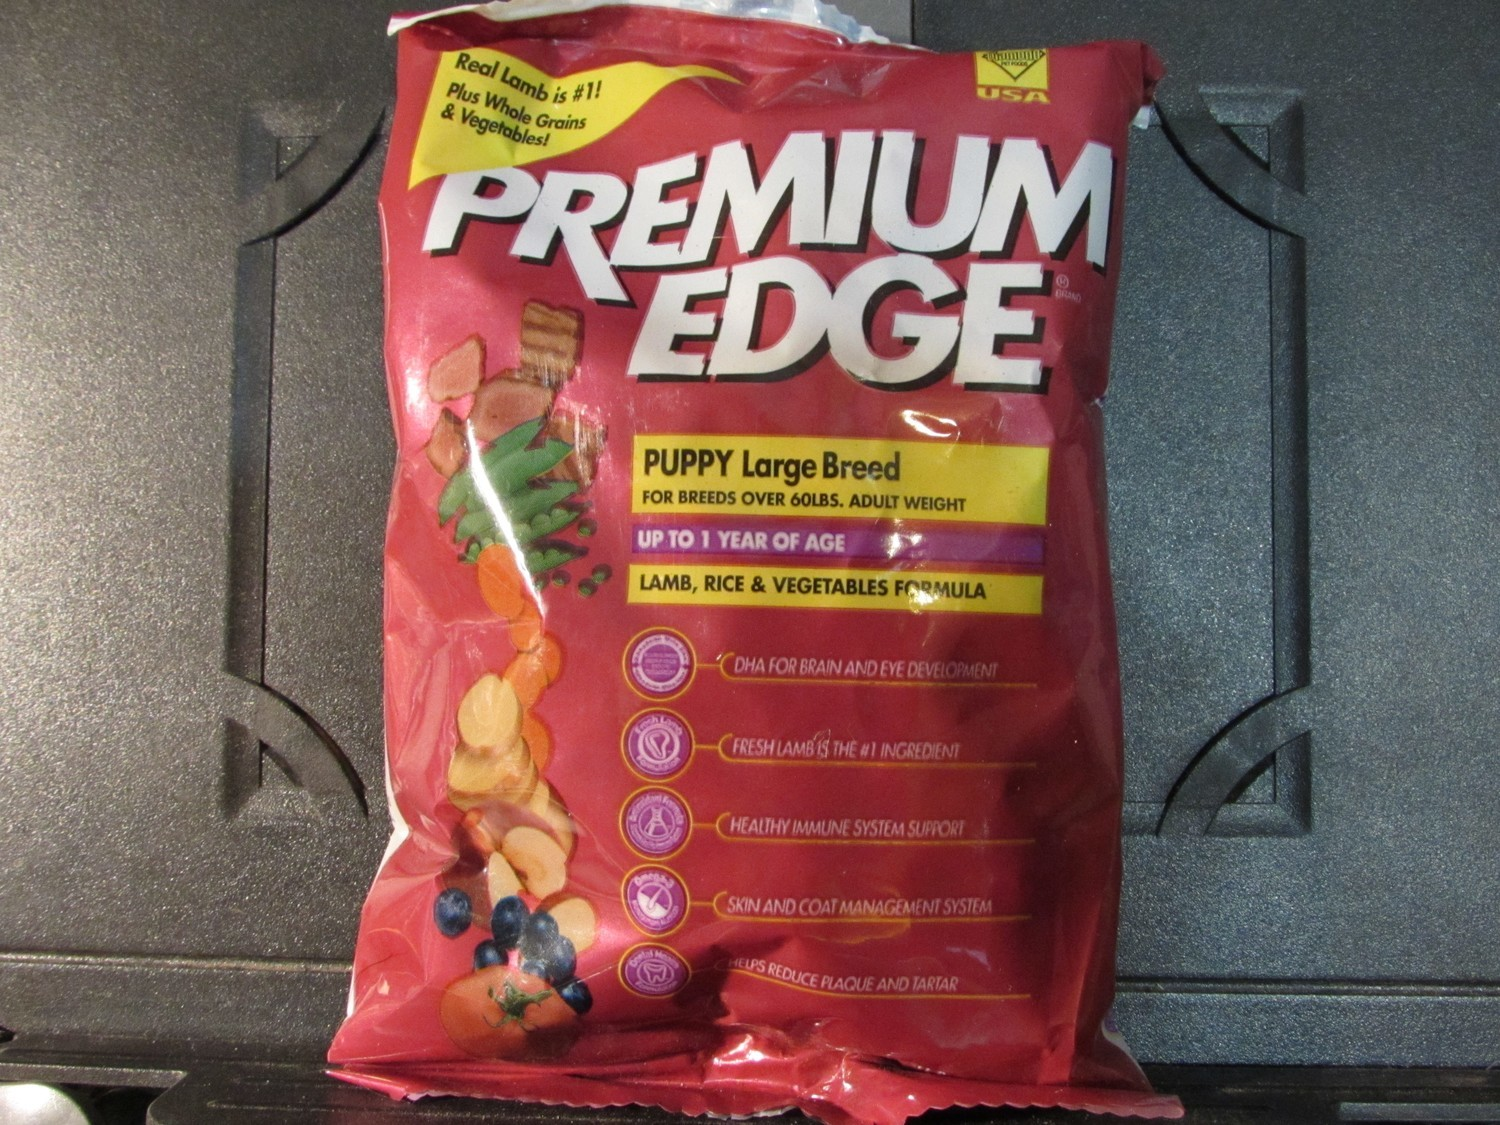 Premium Edge Puppy Large Breed Lam, Rice & Vegi's 6 oz (6/18) (A.O4)